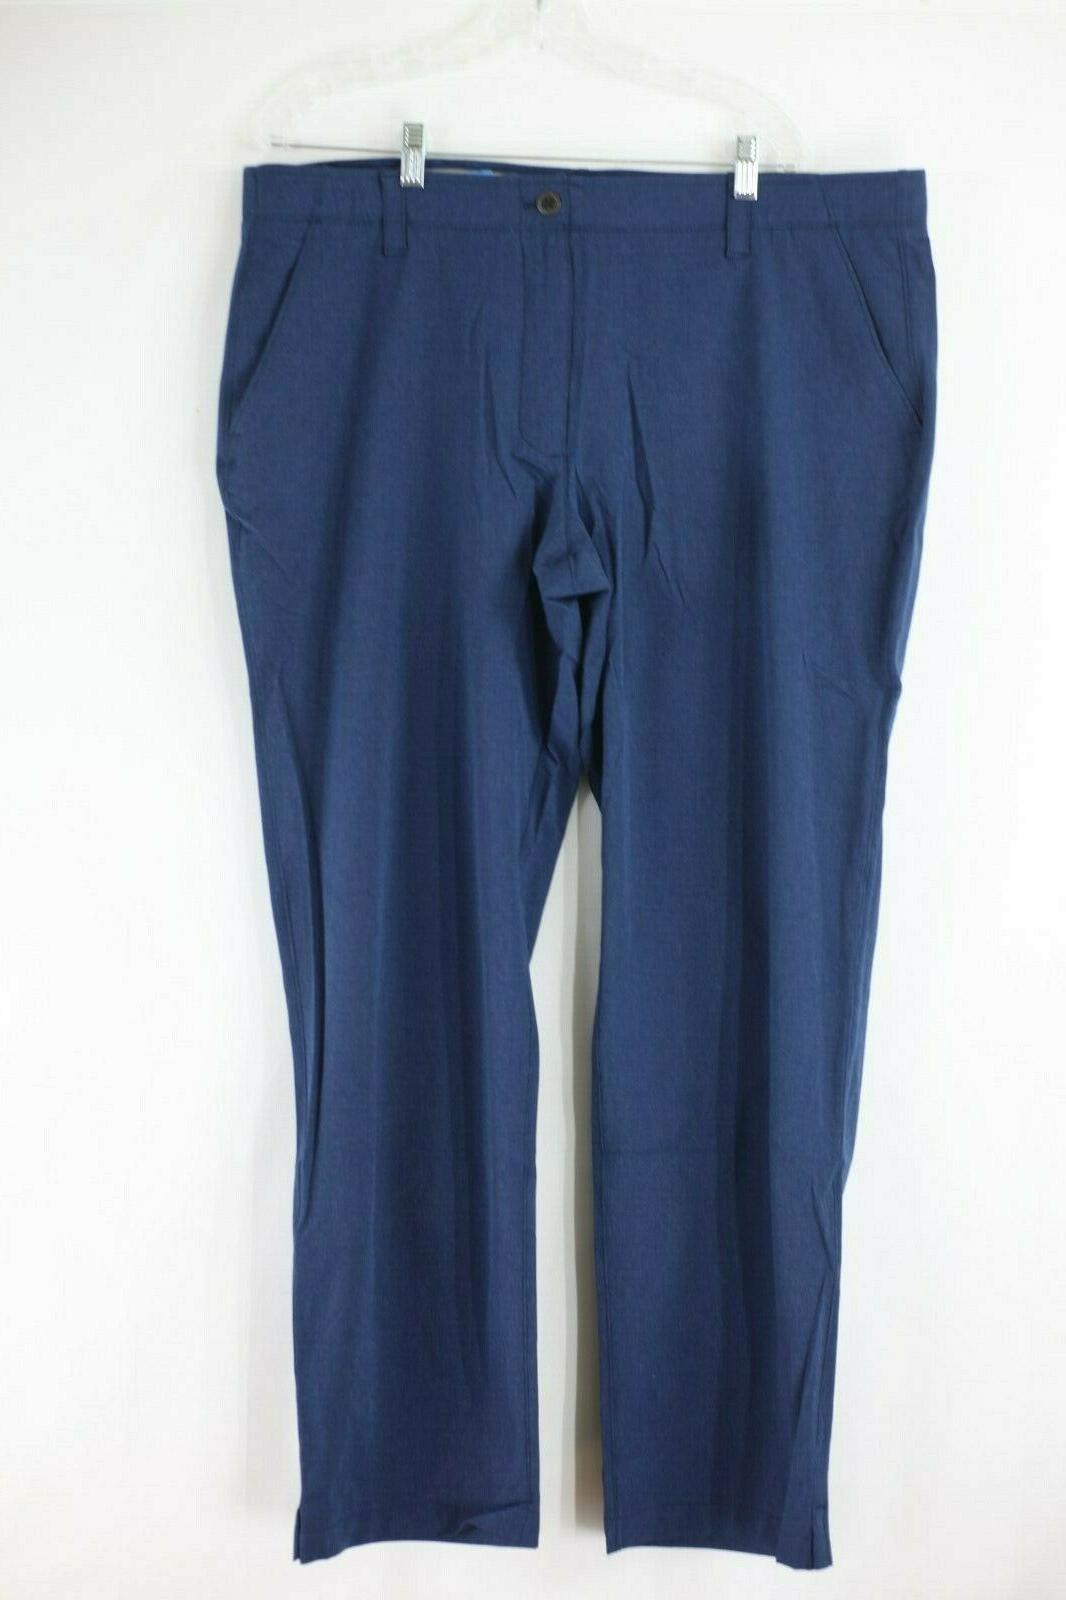 NEW Under Armour Men's Loose Vented Pants Navy Blue Size 42x32